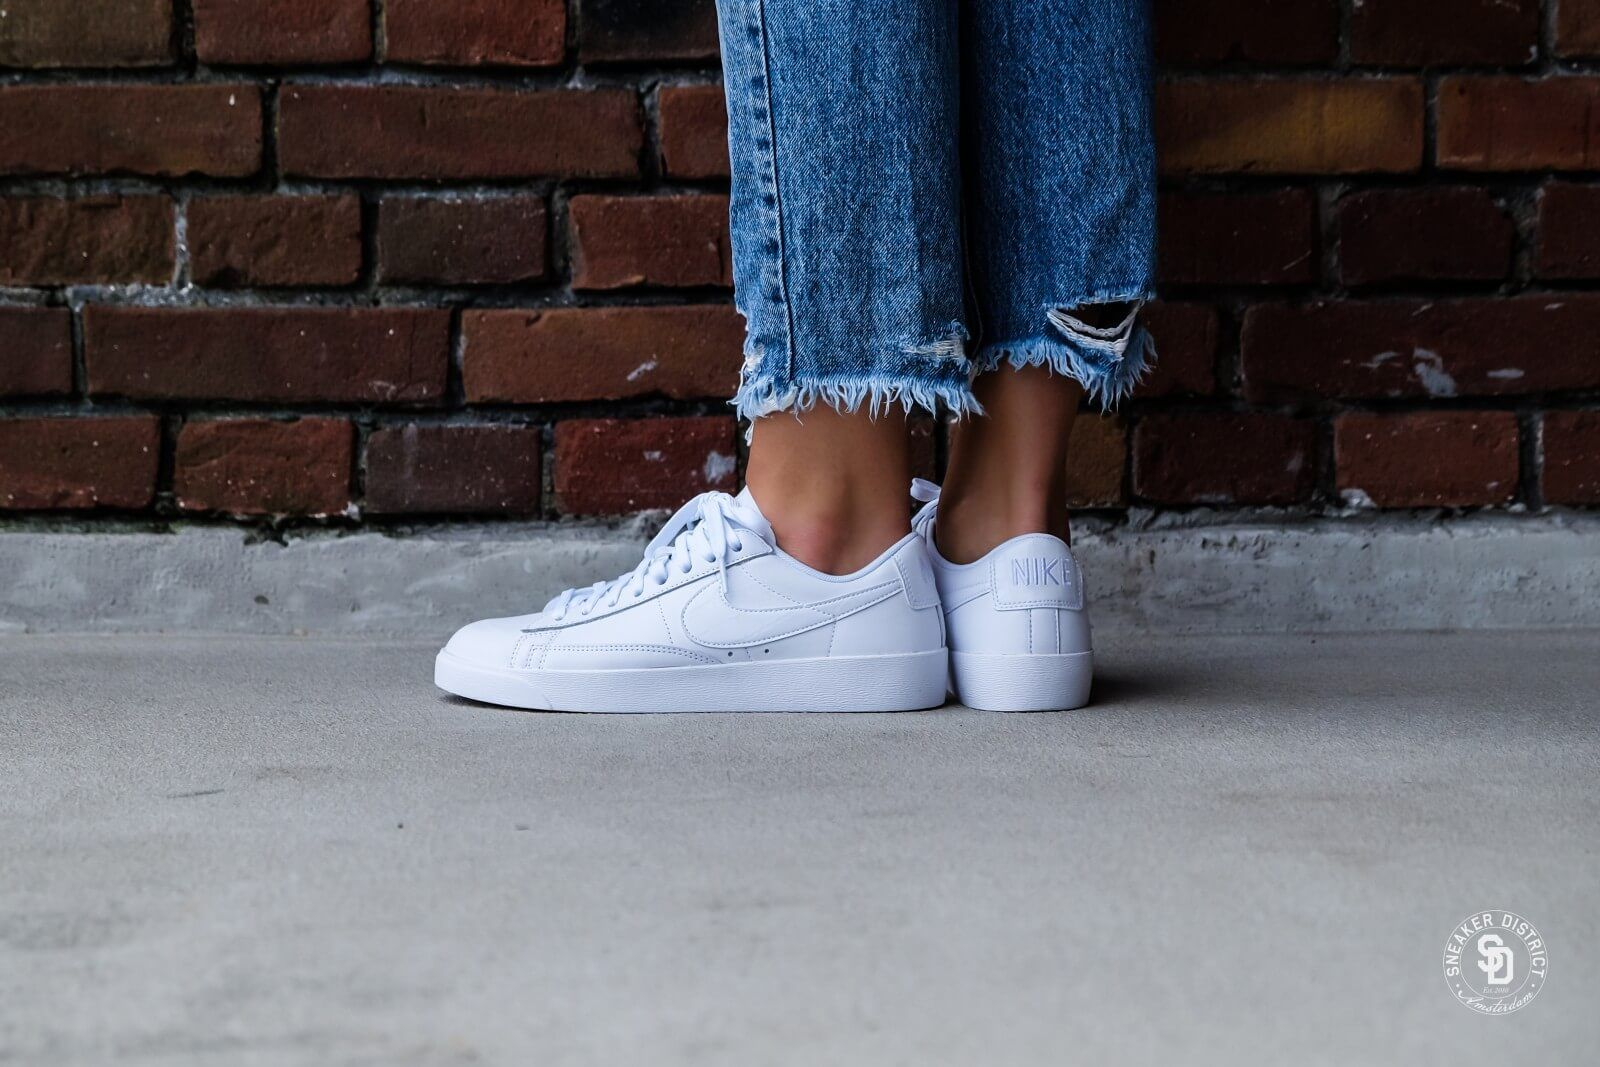 Nike Women's Blazer Low White | White sneakers women, White ...